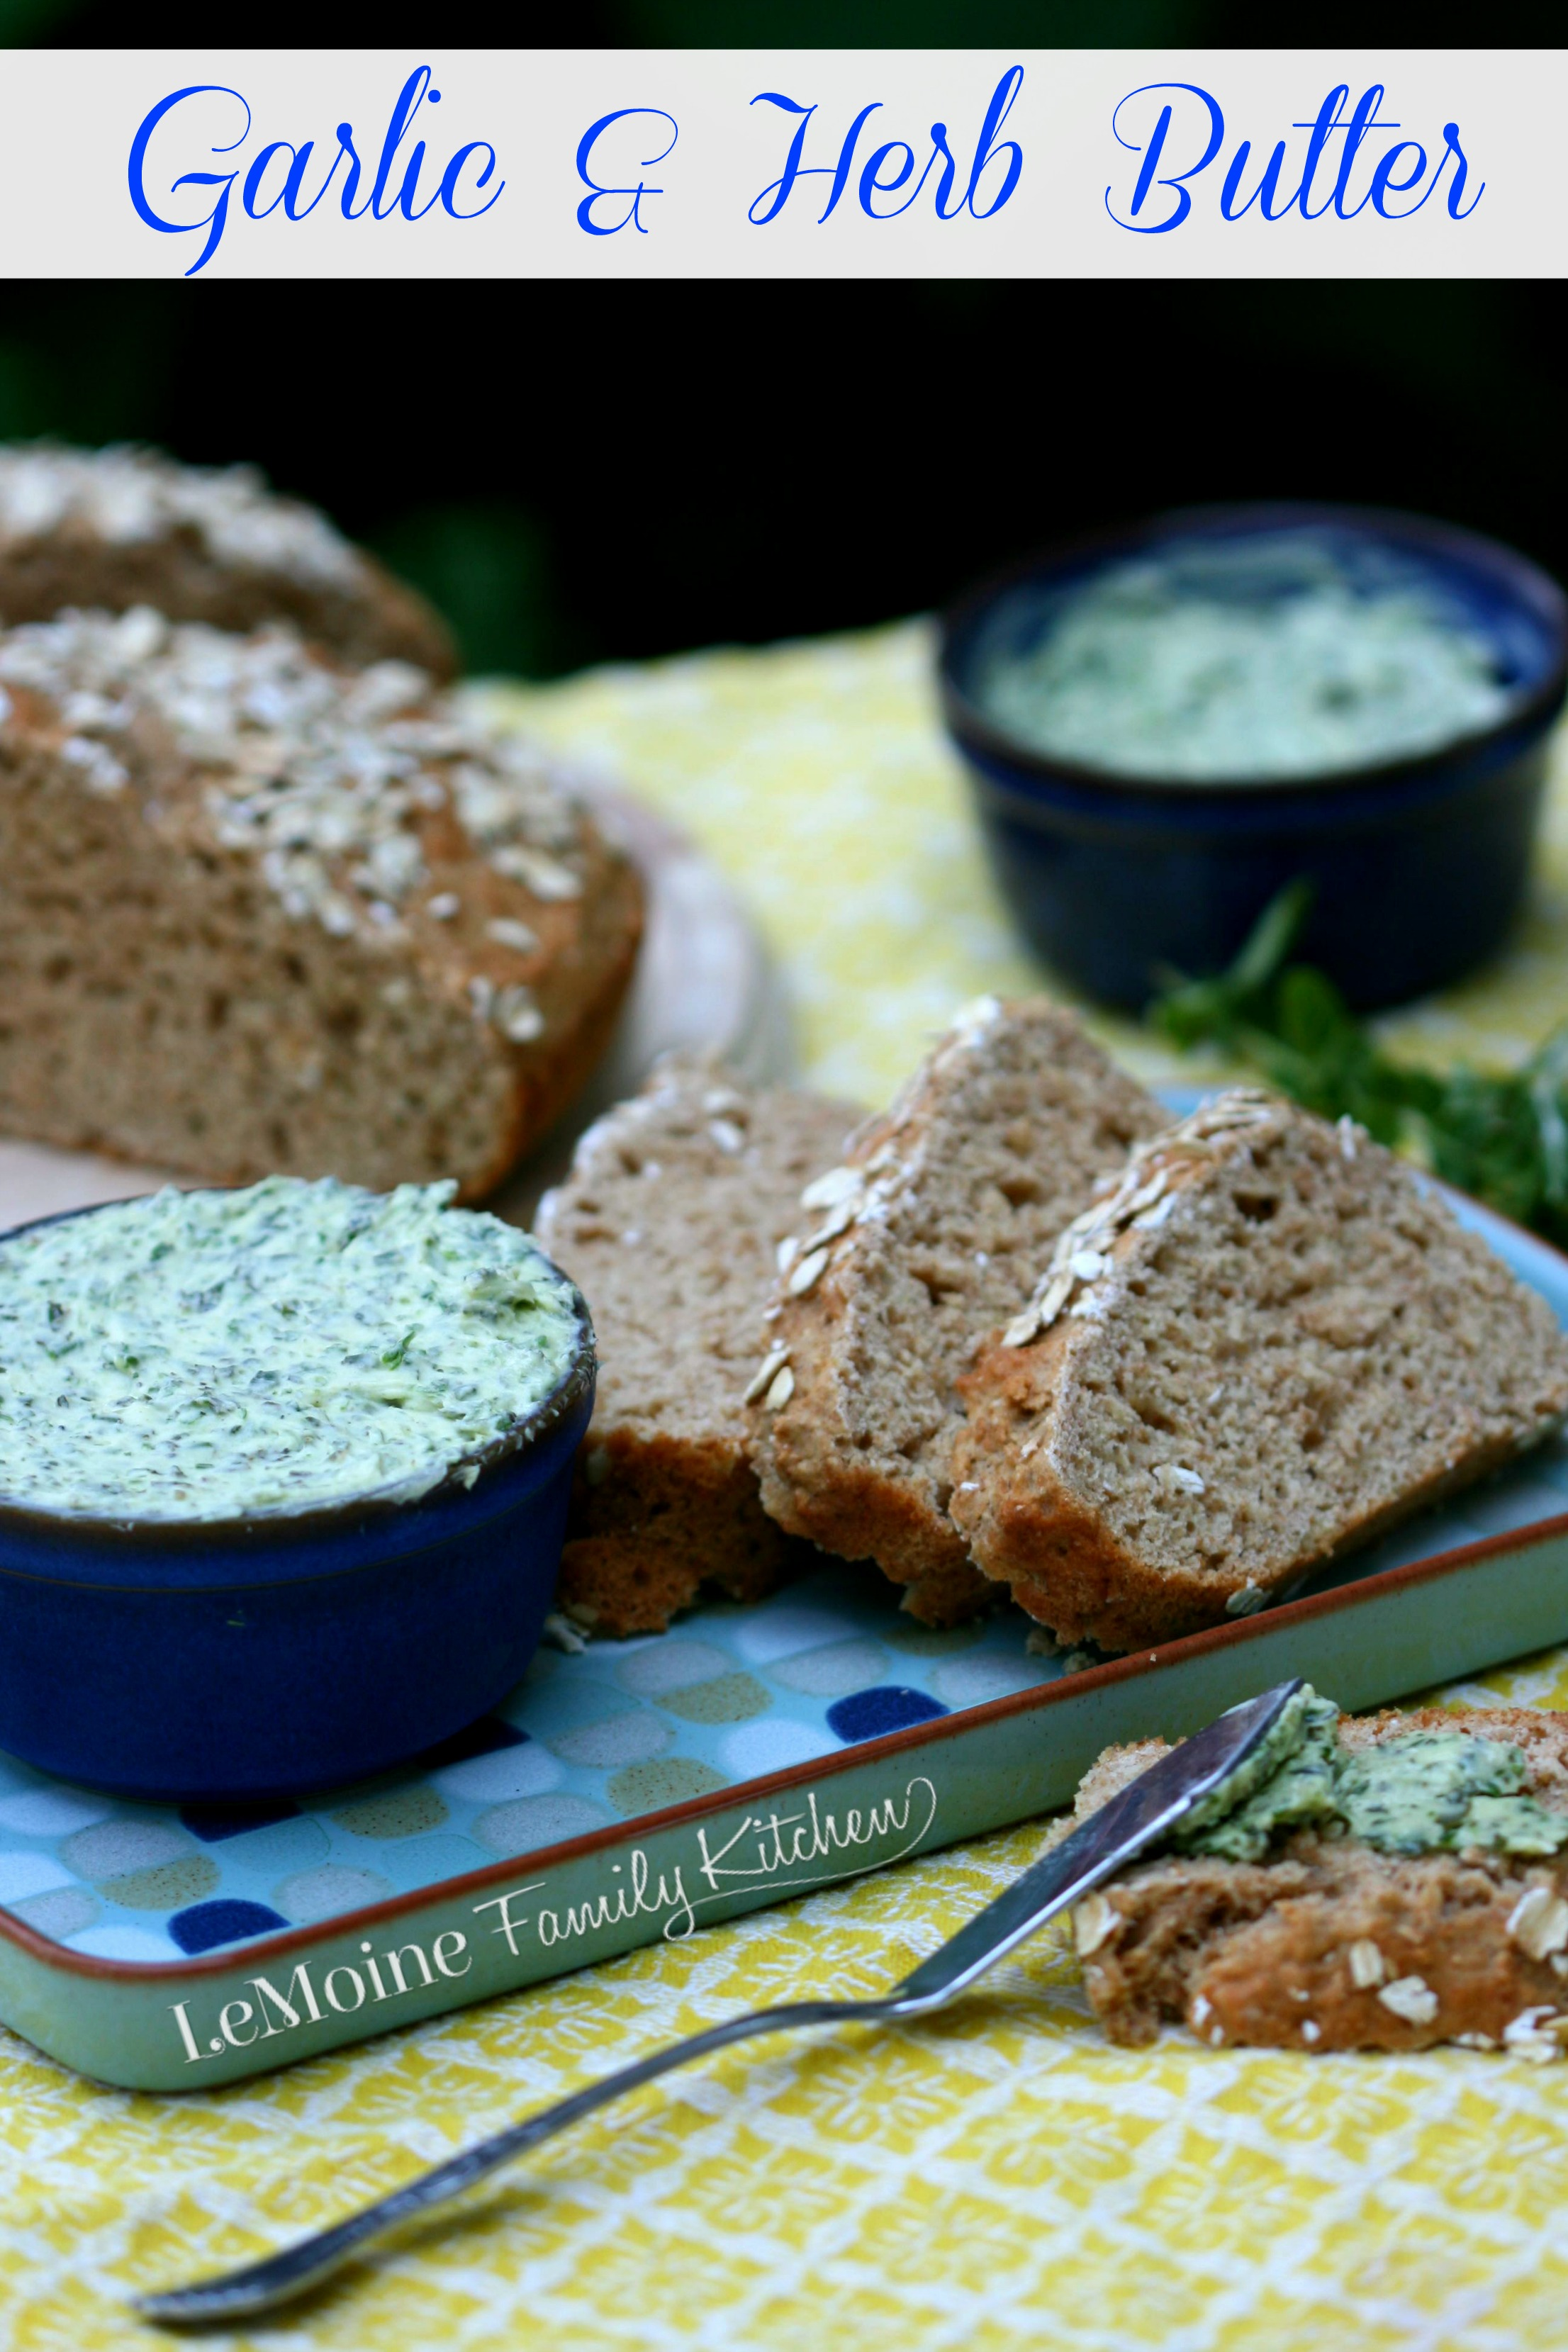 Garlic & Herb Butter | LeMoine Family Kitchen. Flavored butters are a simple and great way to add tons of flavor to bread, steak or seafood.